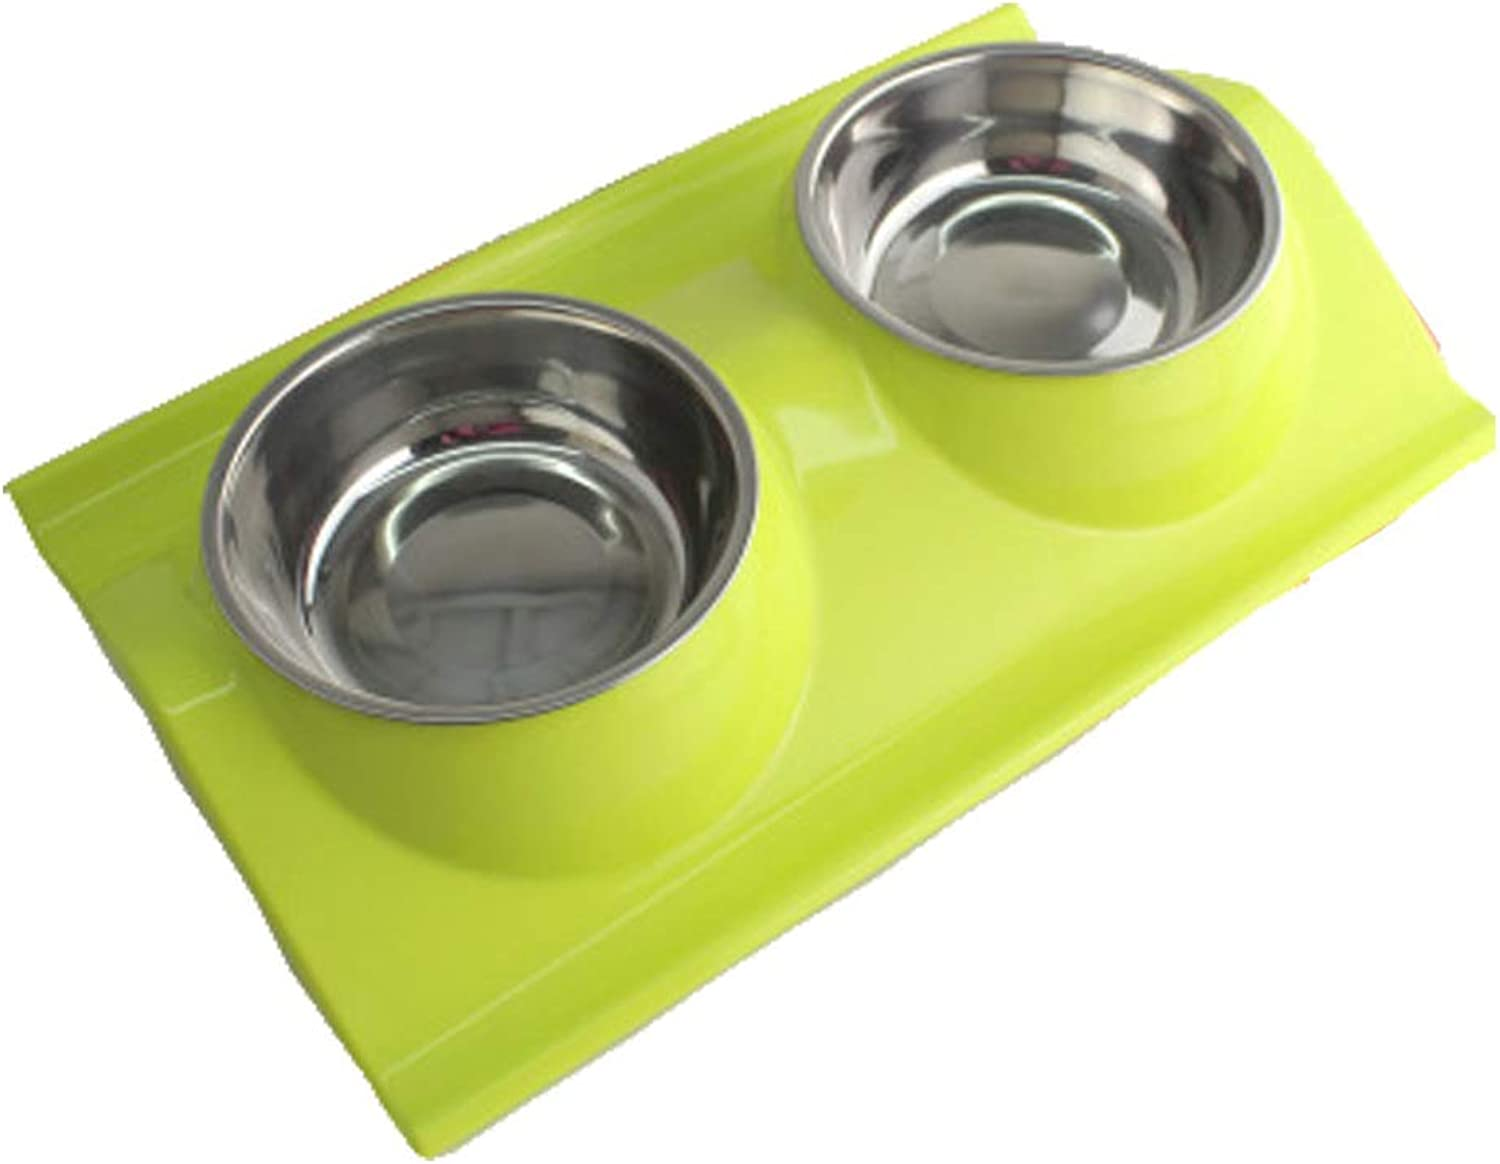 Double Stainless Steel Dog Cat Bowls with NonSpill Design, for Pet Food and Water Feeder Easy to Clean